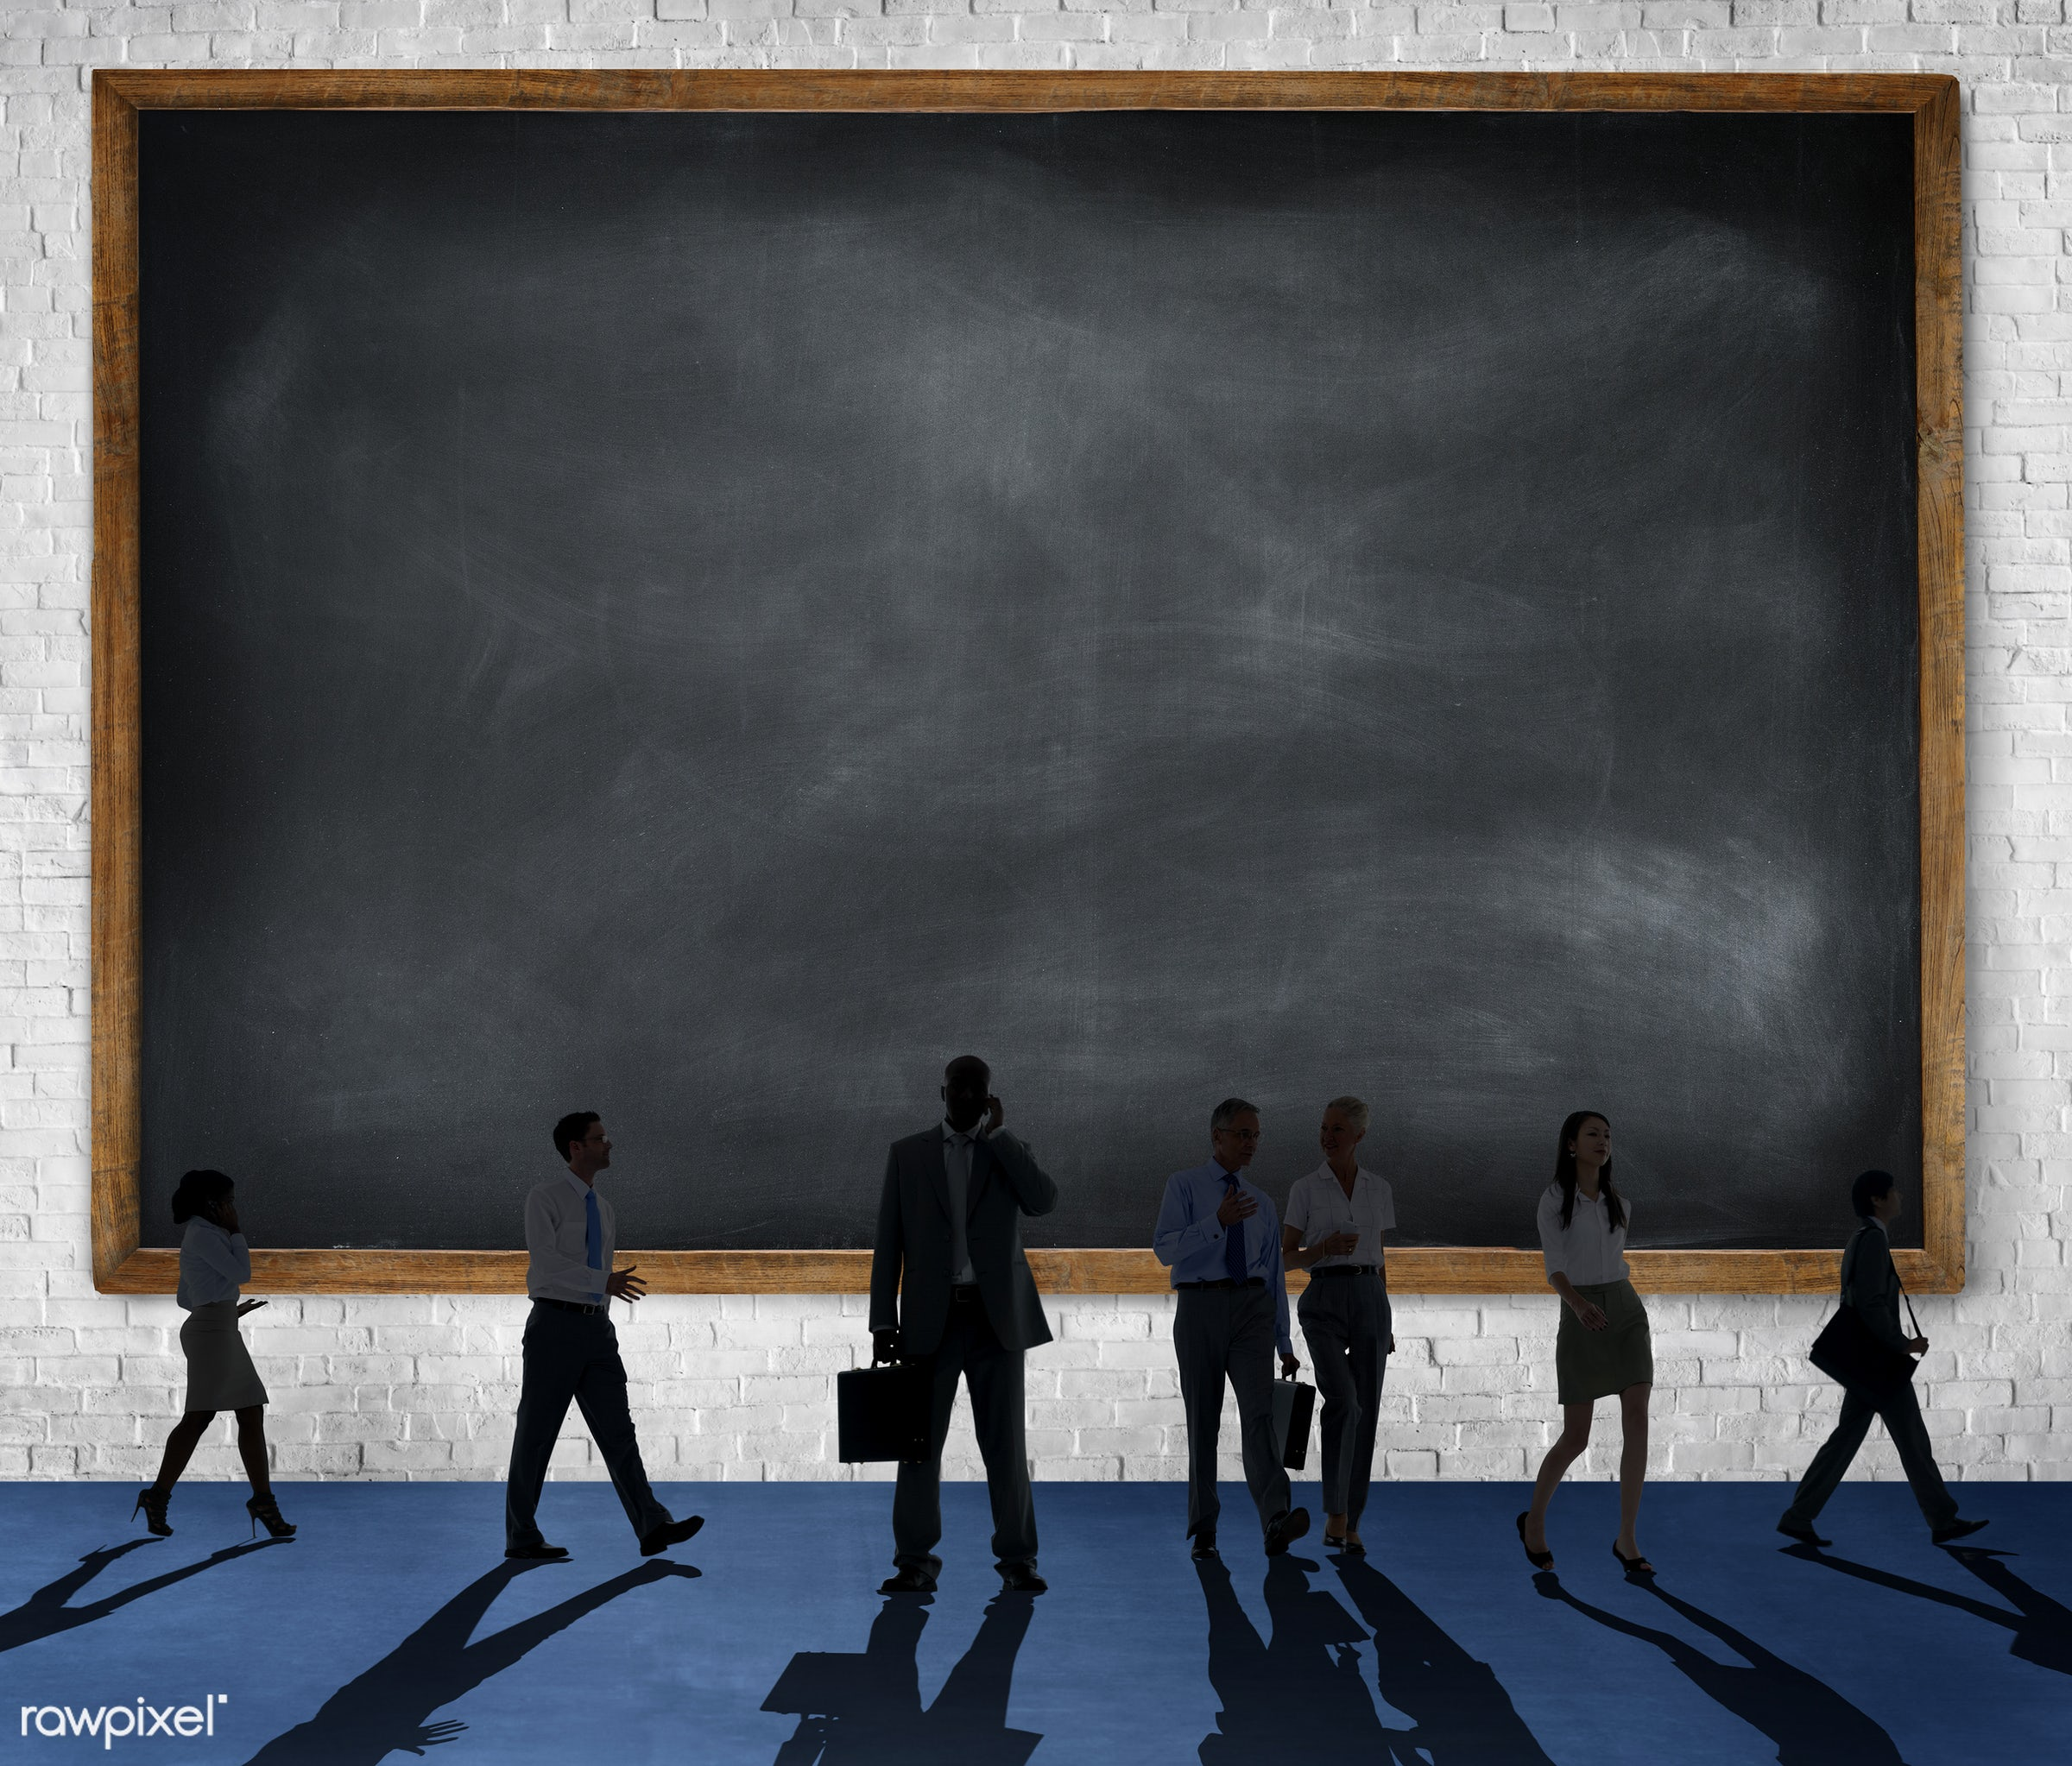 blackboard, boardroom, building, business, business people, businessmen, businesswomen, chalkboard, colleague, communication...